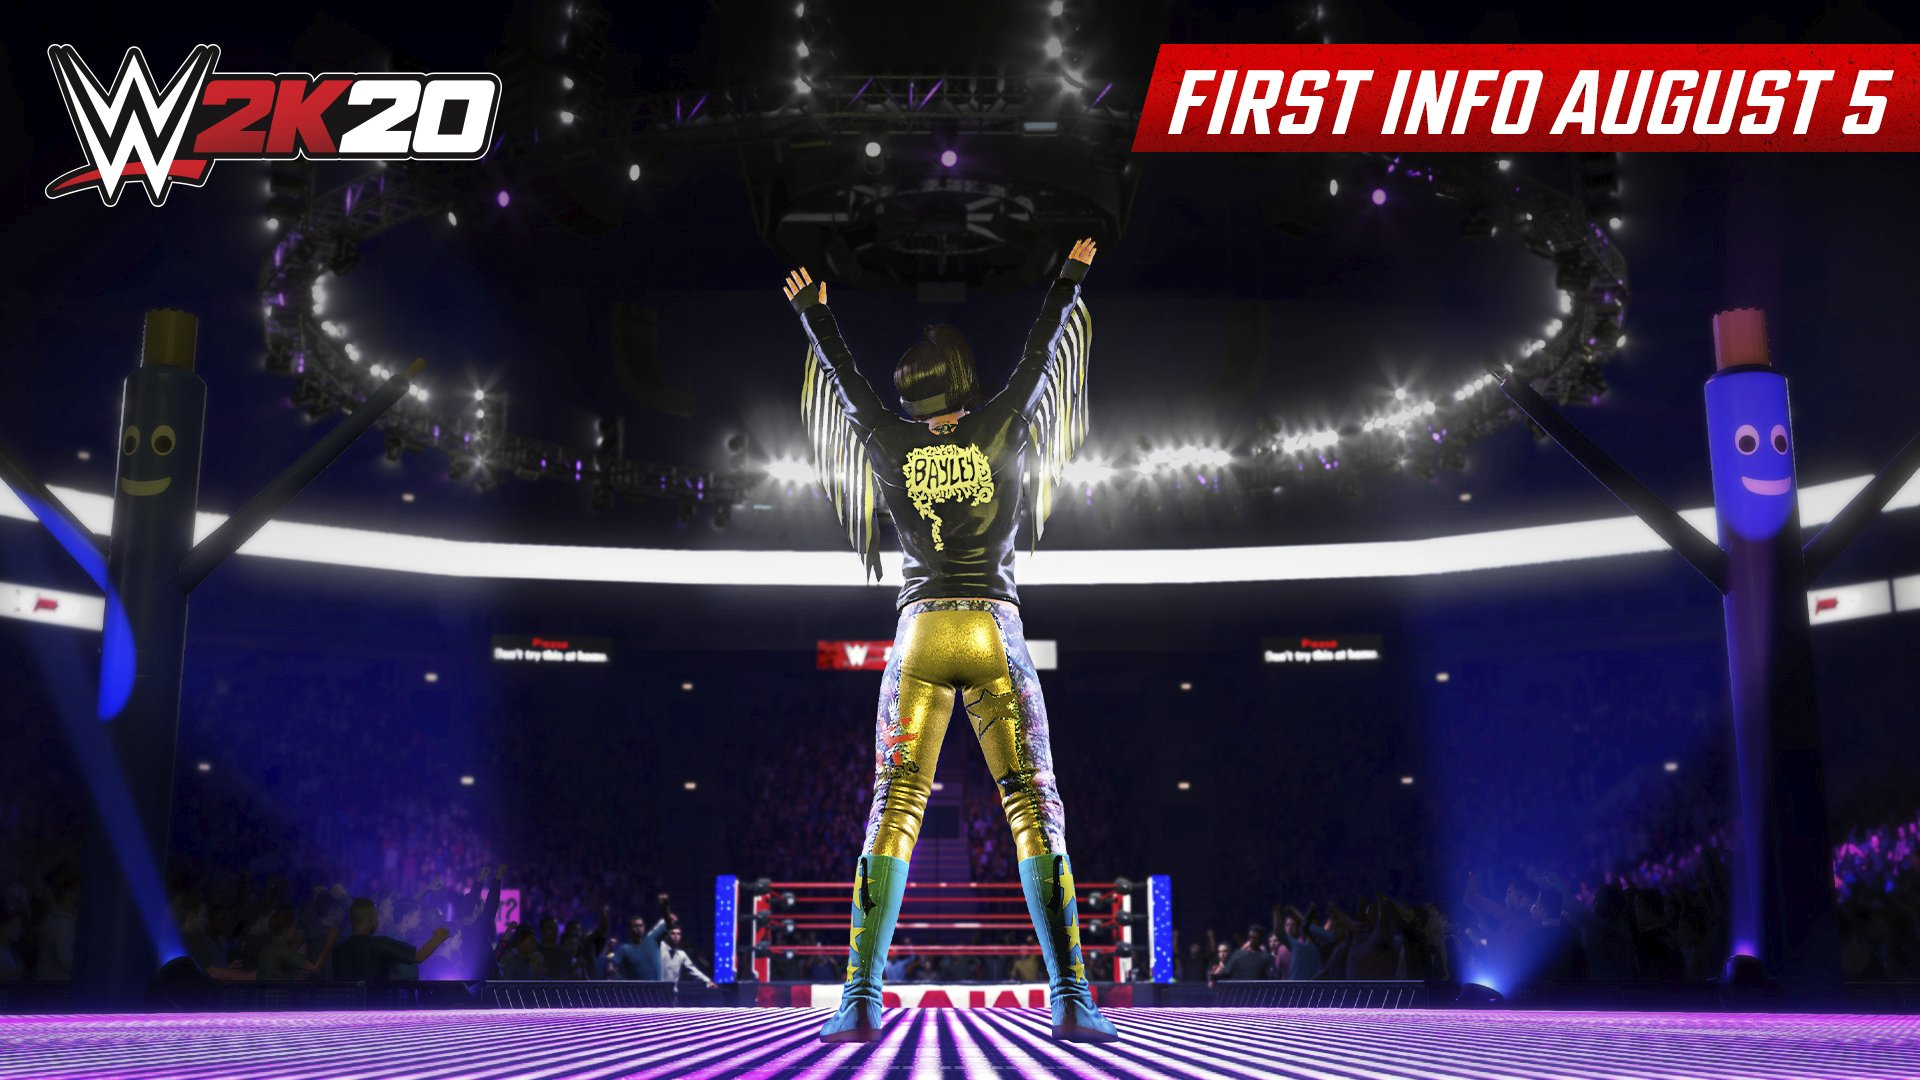 WWE 2K 20 screenshot